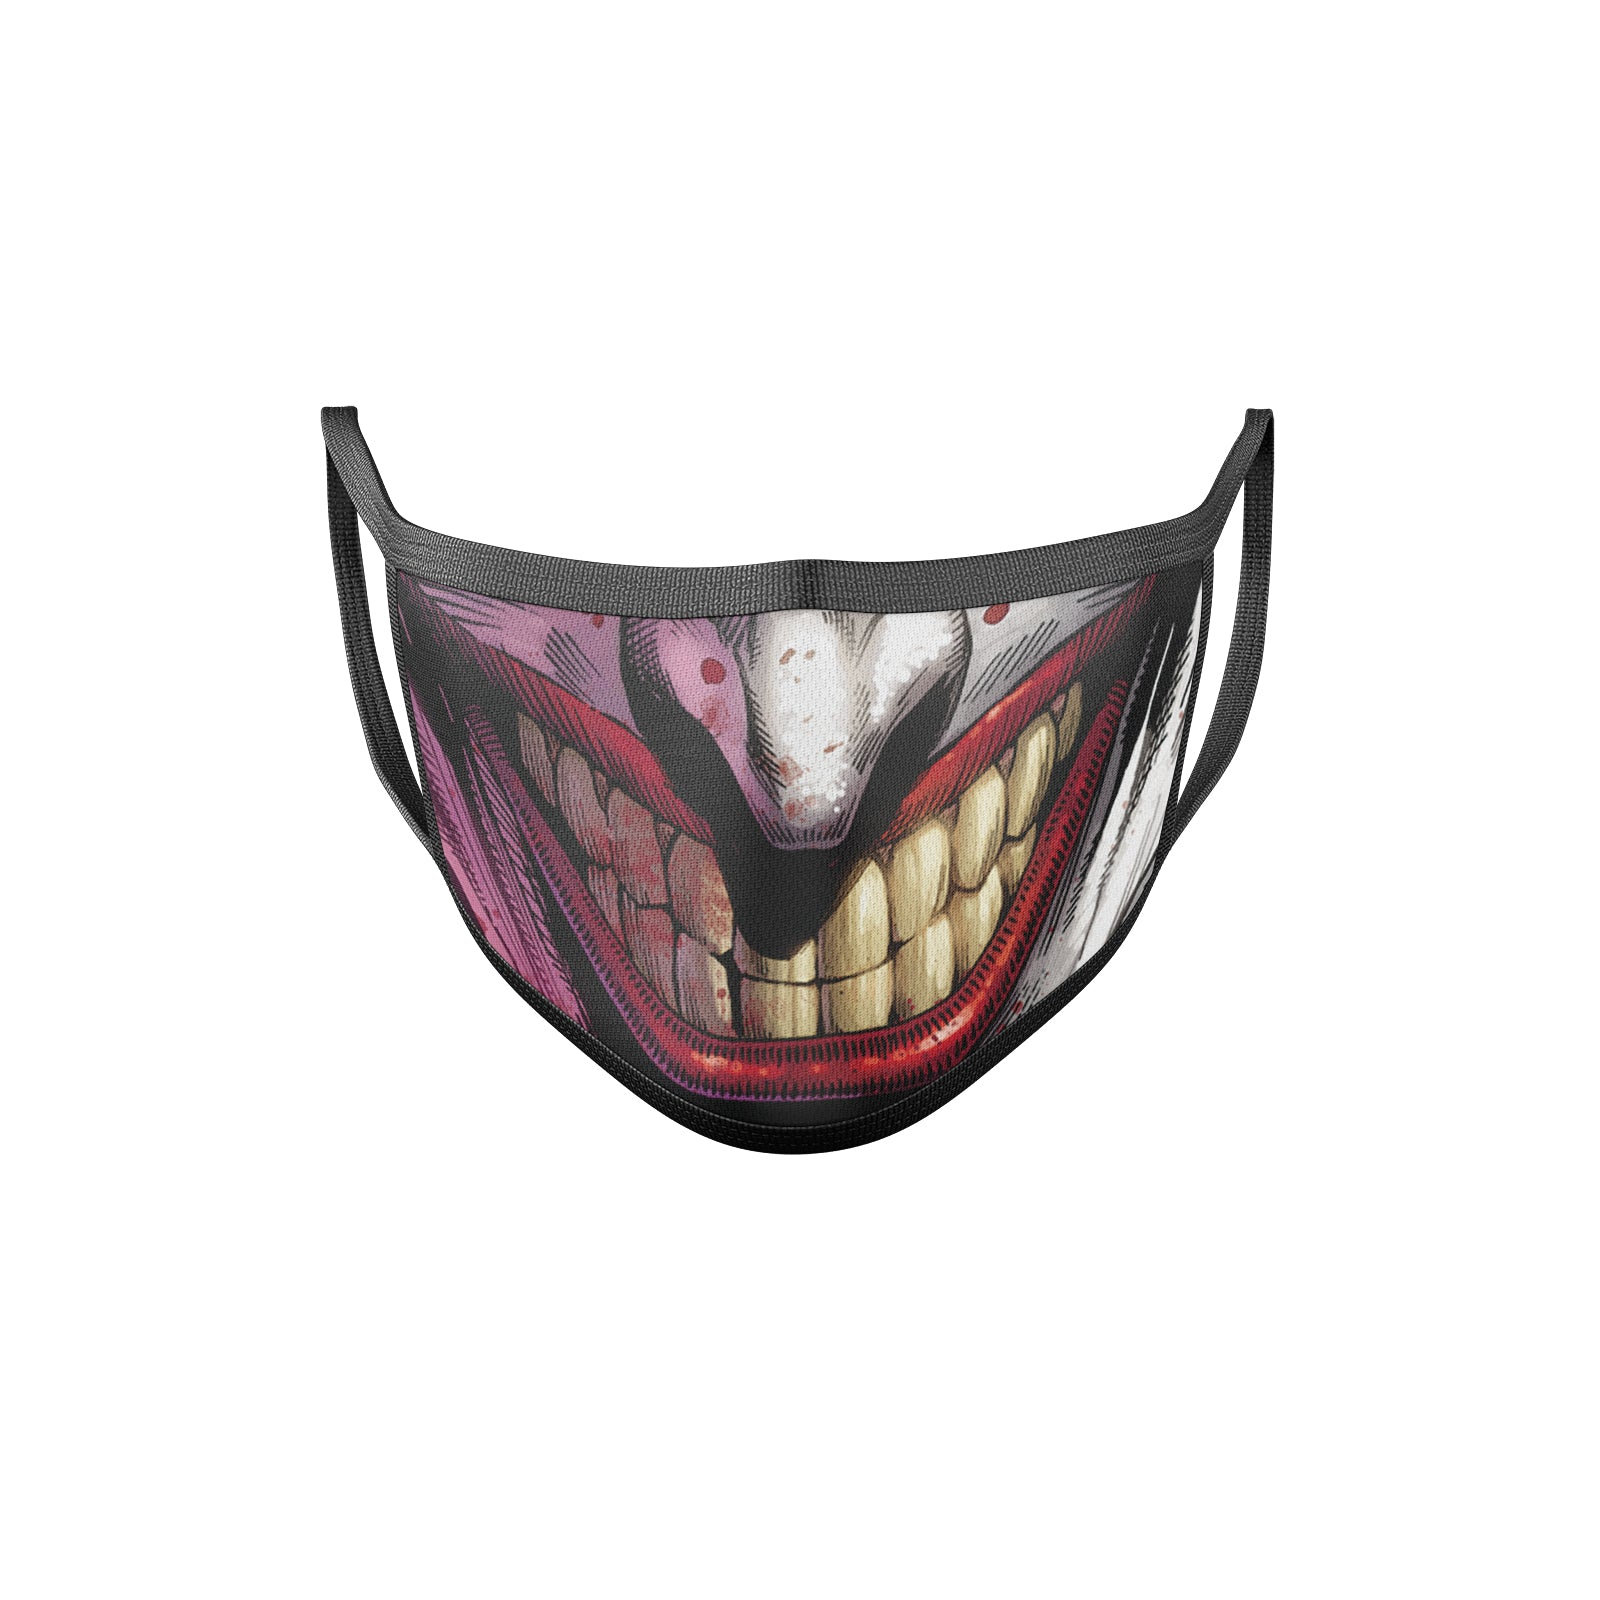 The Joker Face Masks